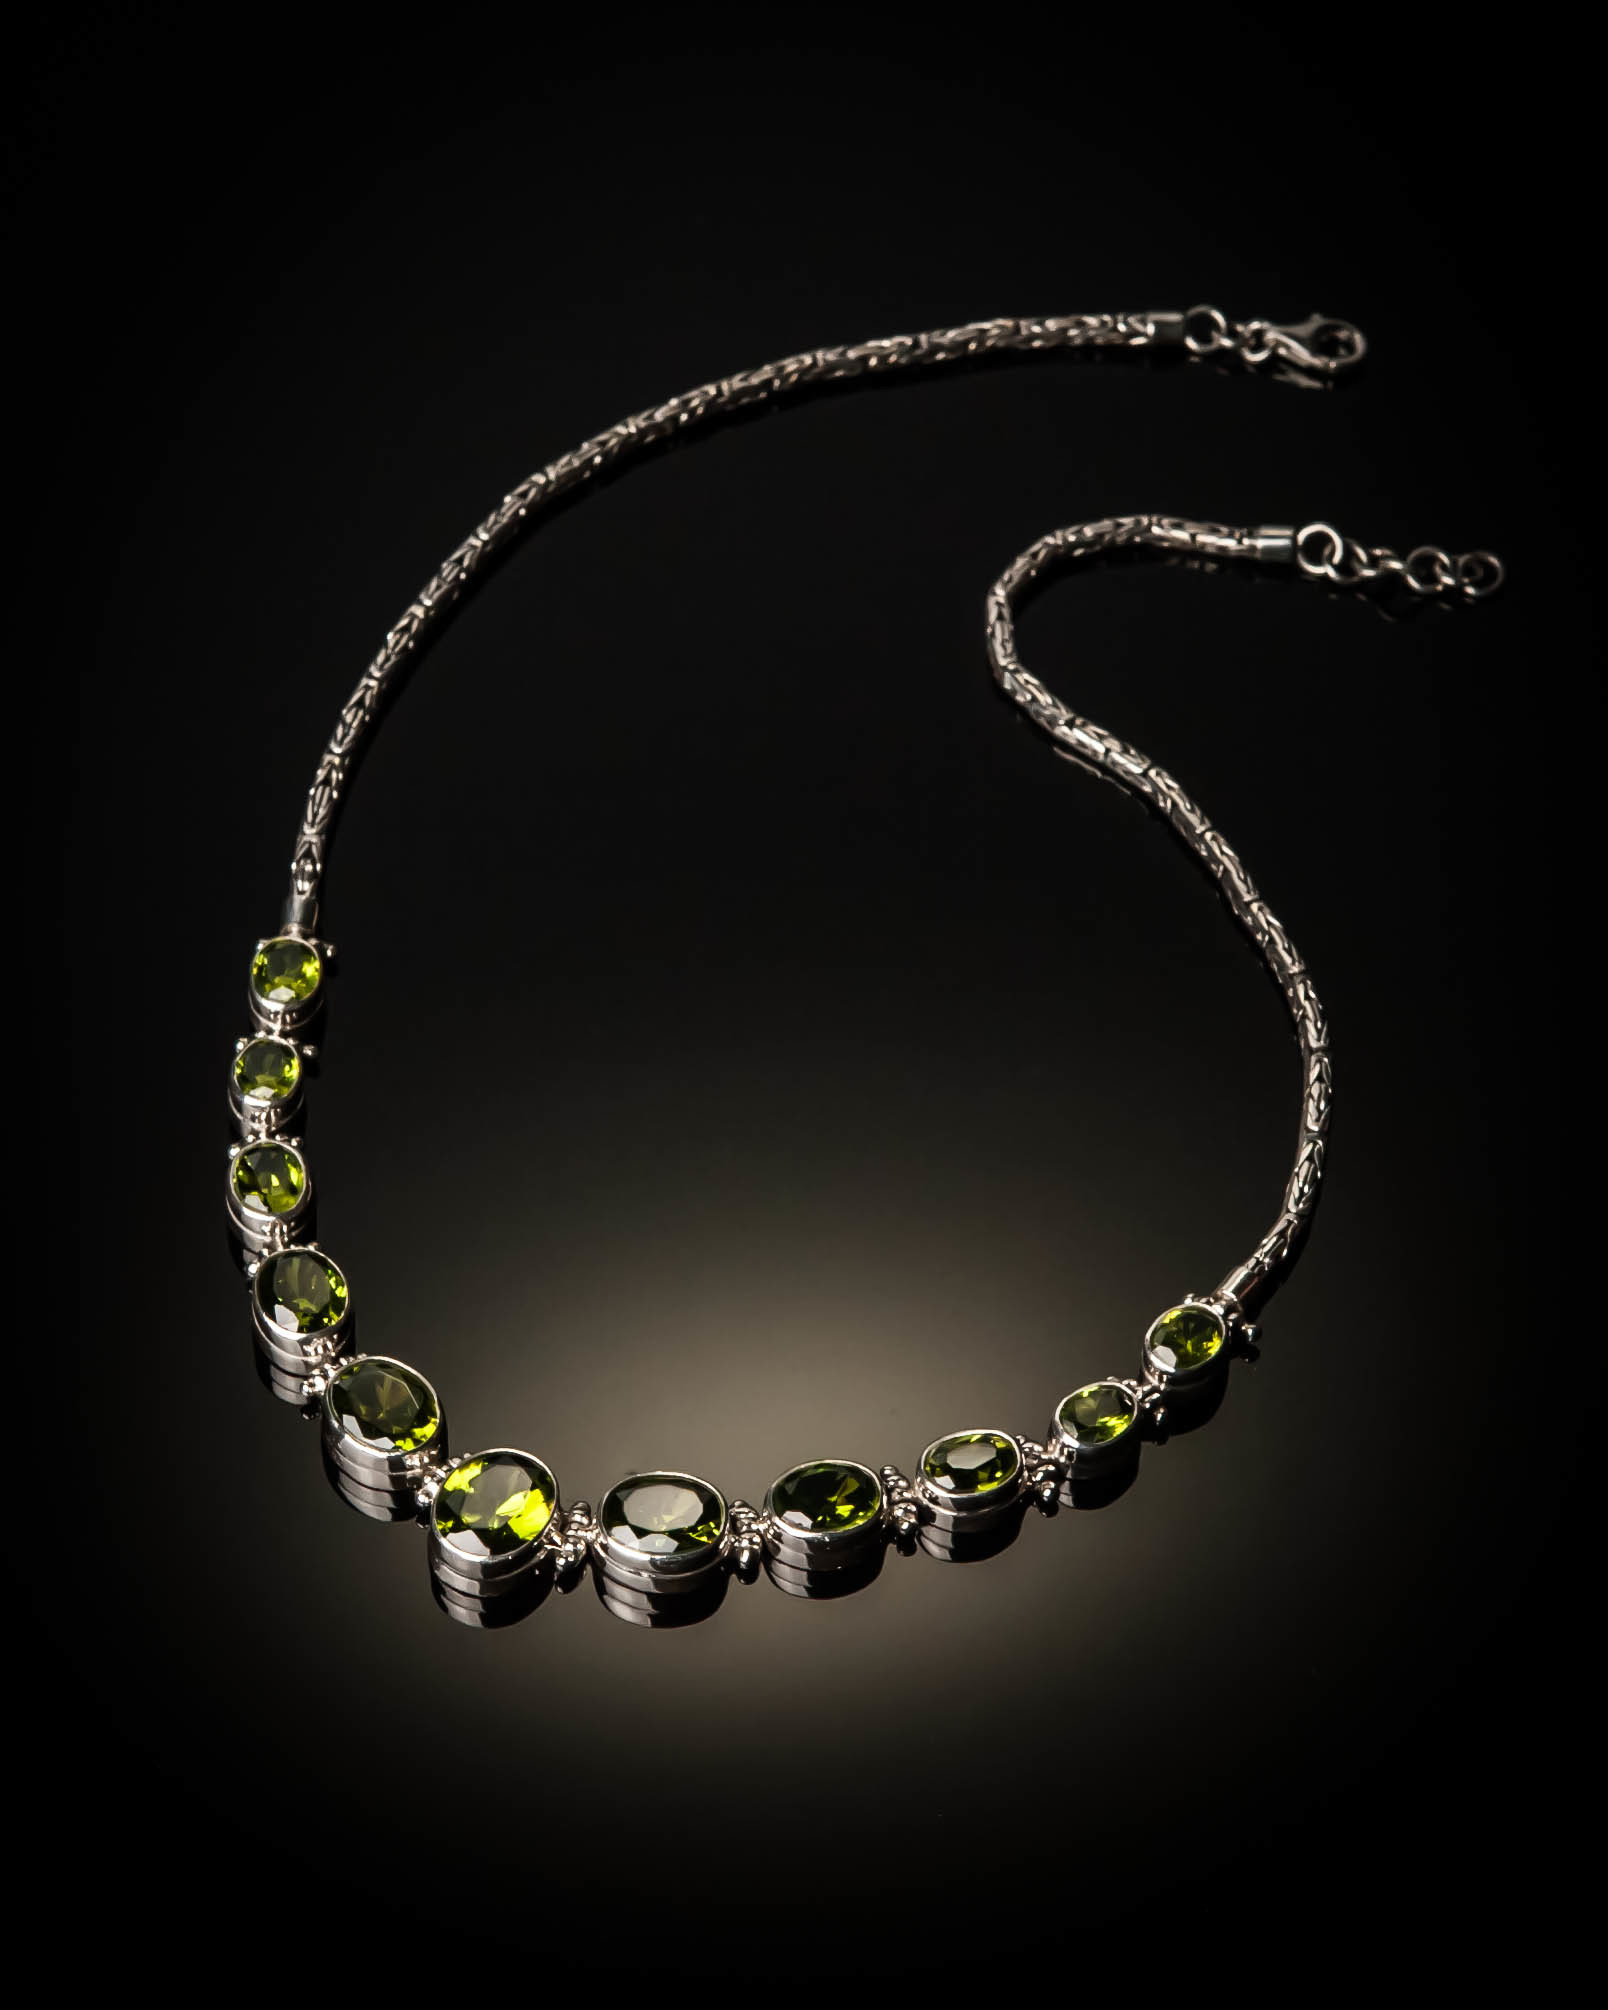 Sterling Silver Natural Peridot Necklace AKL-XXX-Peridot